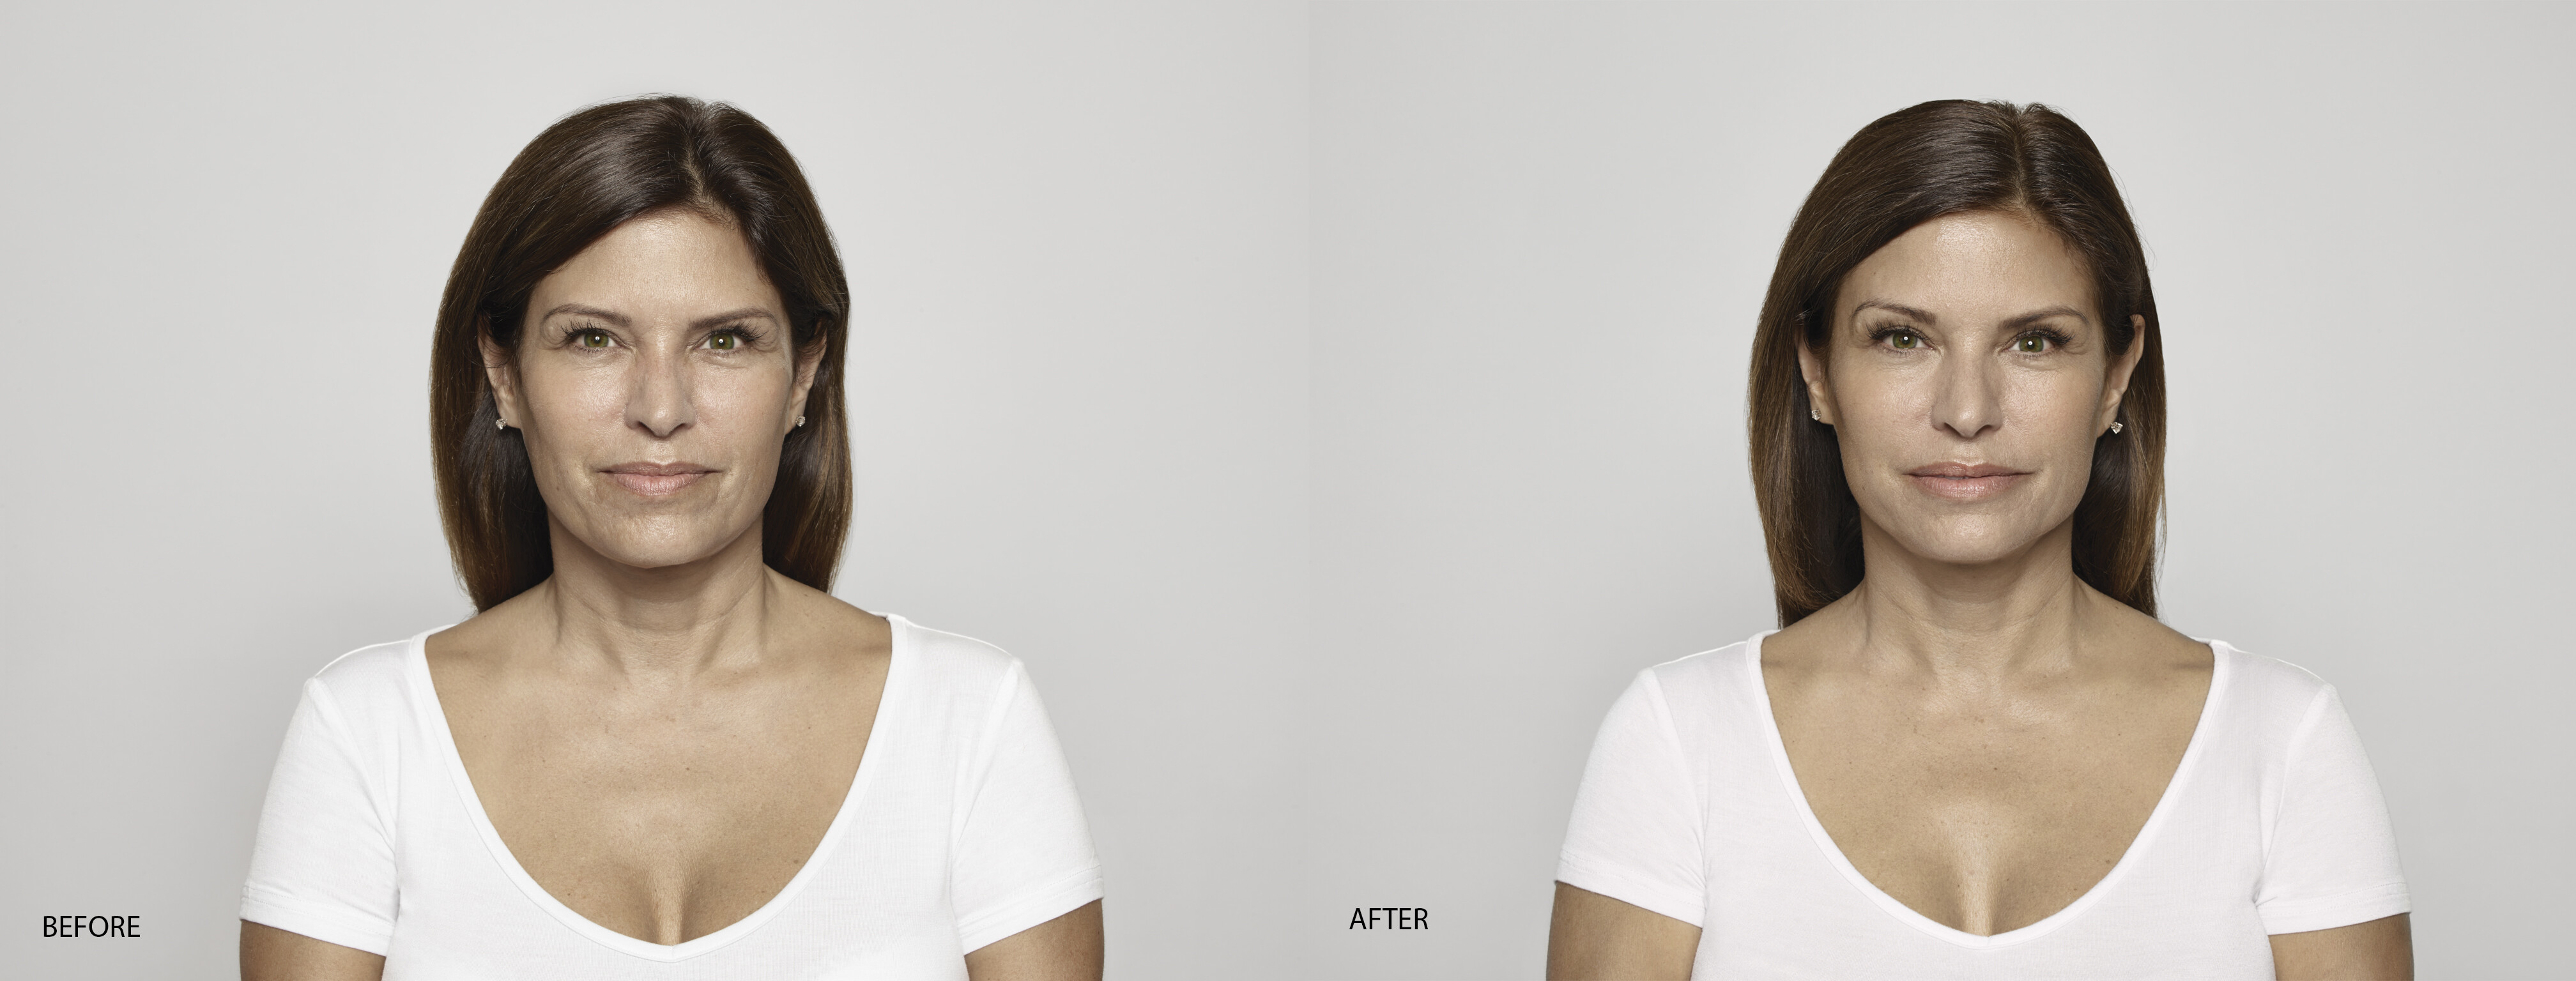 Dr. Terese Taylor M.D. - Cape Coral Doctor - Restylane - Before and After